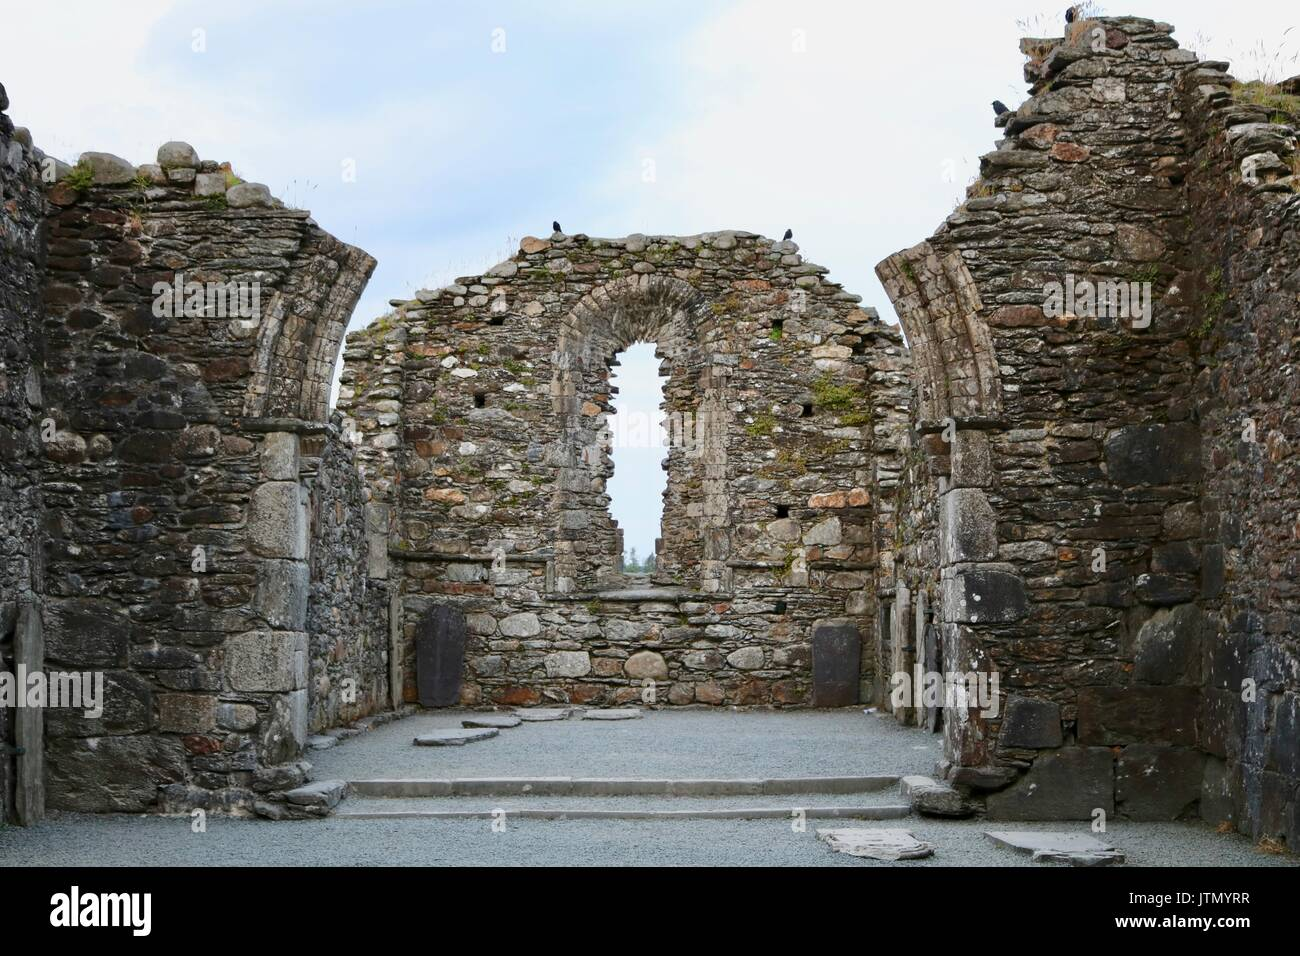 Ancient Ruins of Monastic Church - Stock Image